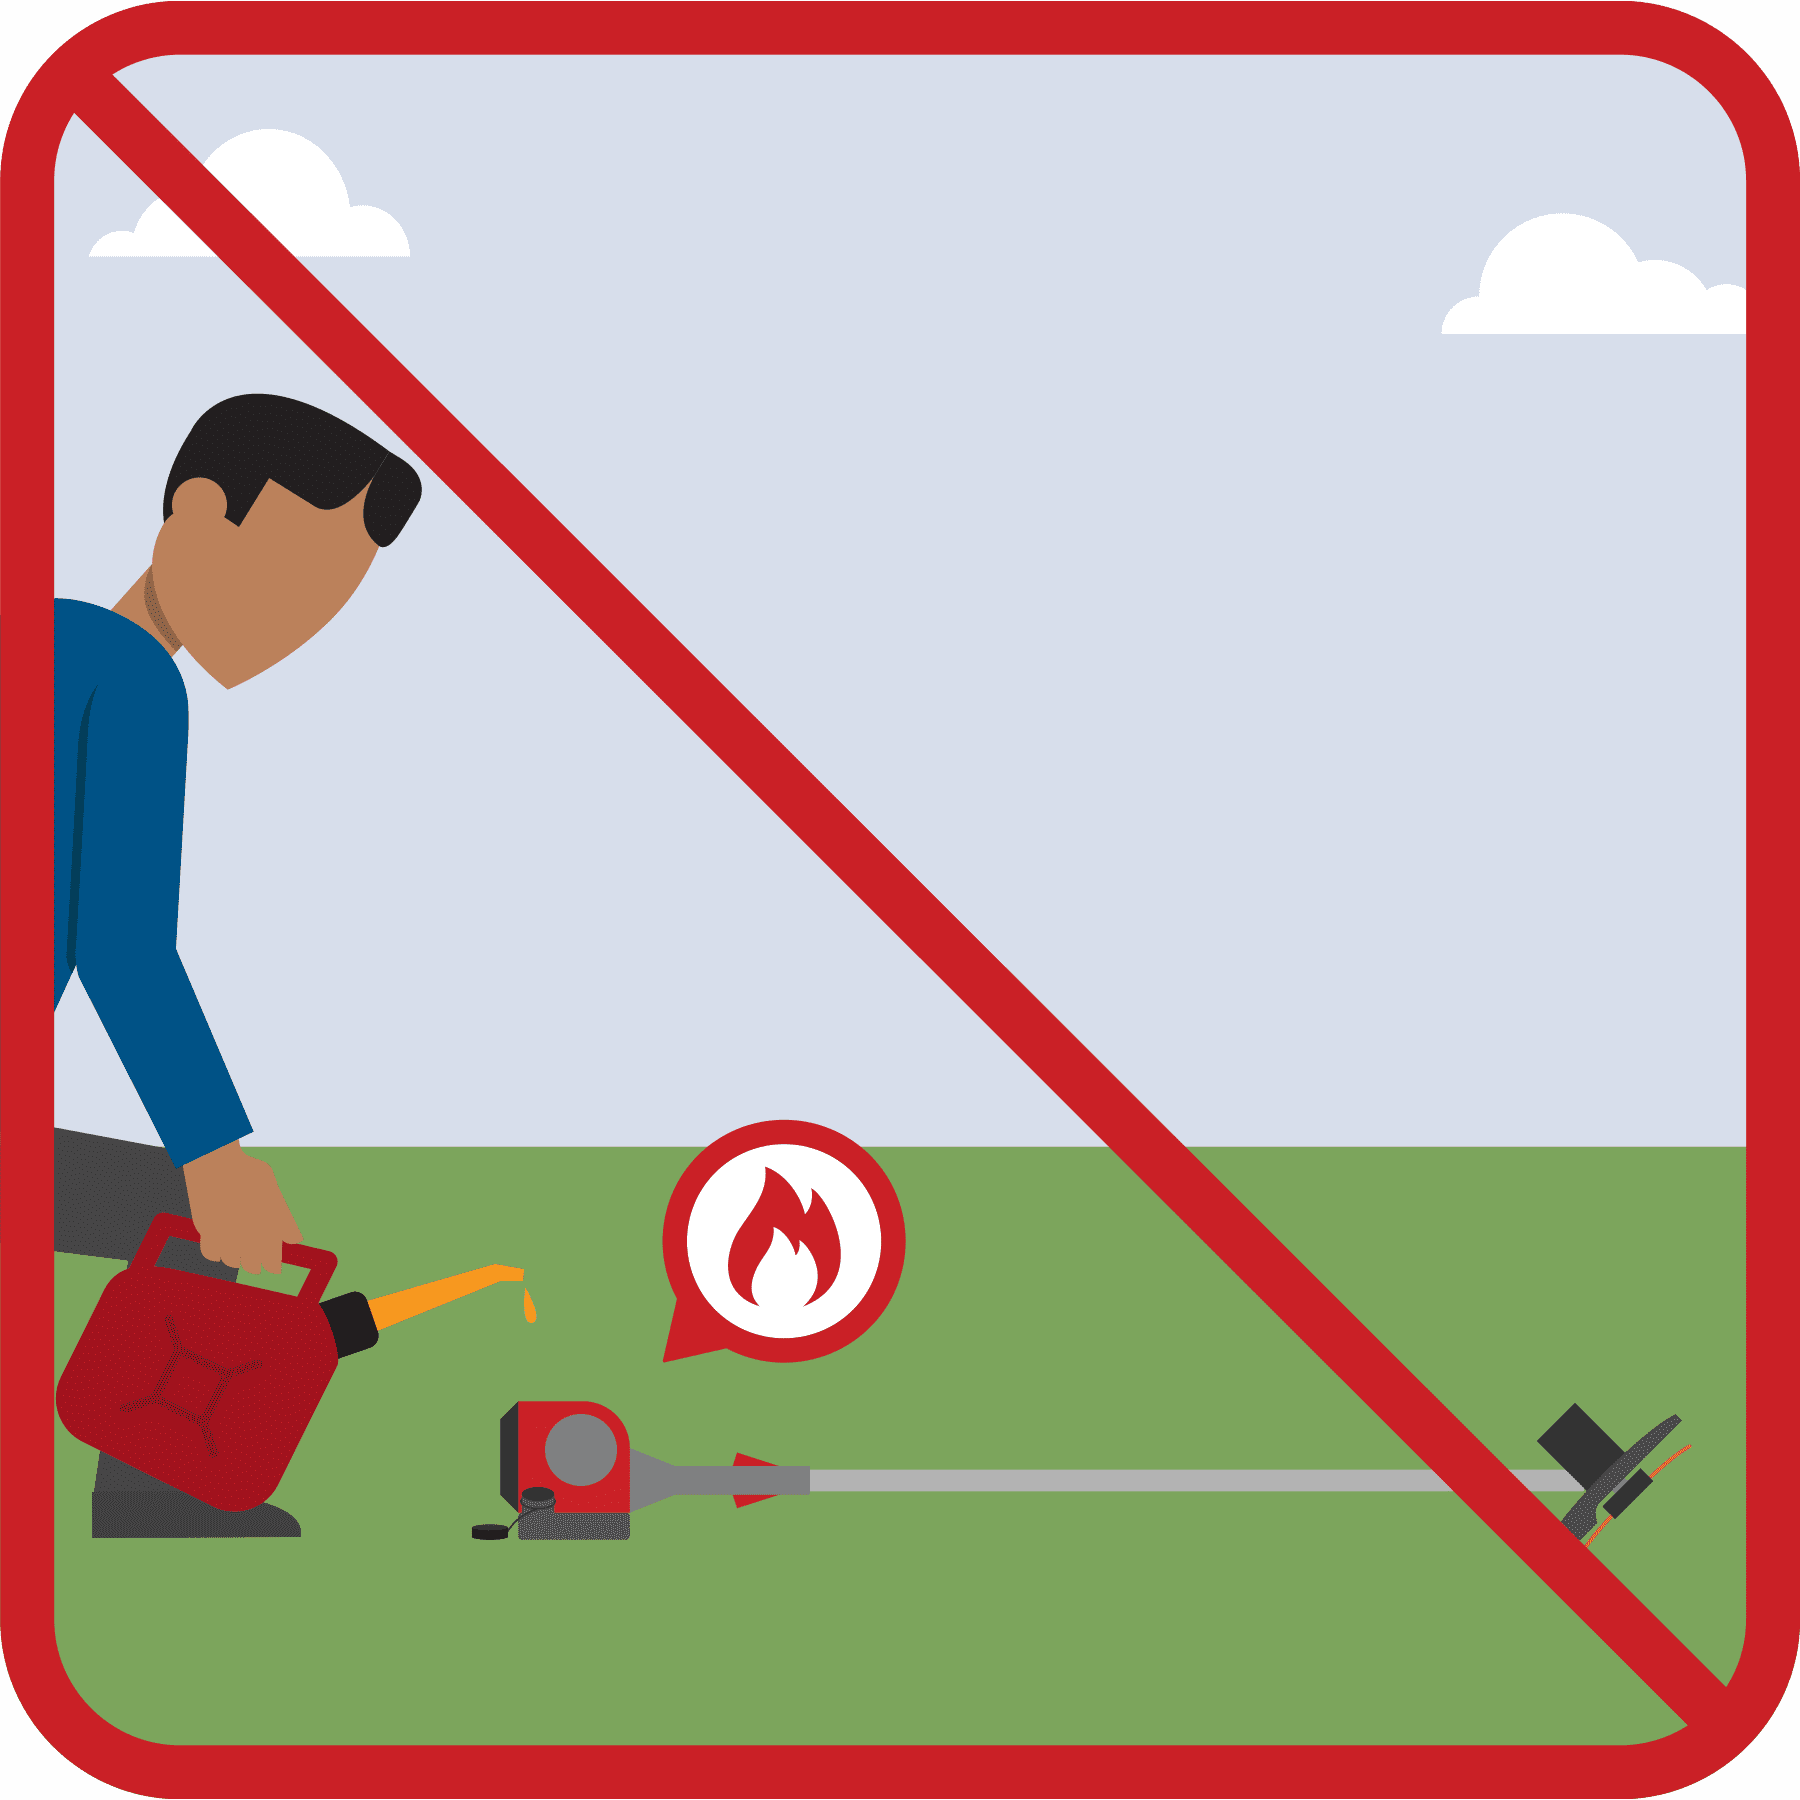 A man is fueling a hot weed trimmer. A red line is drawn across the illustration.